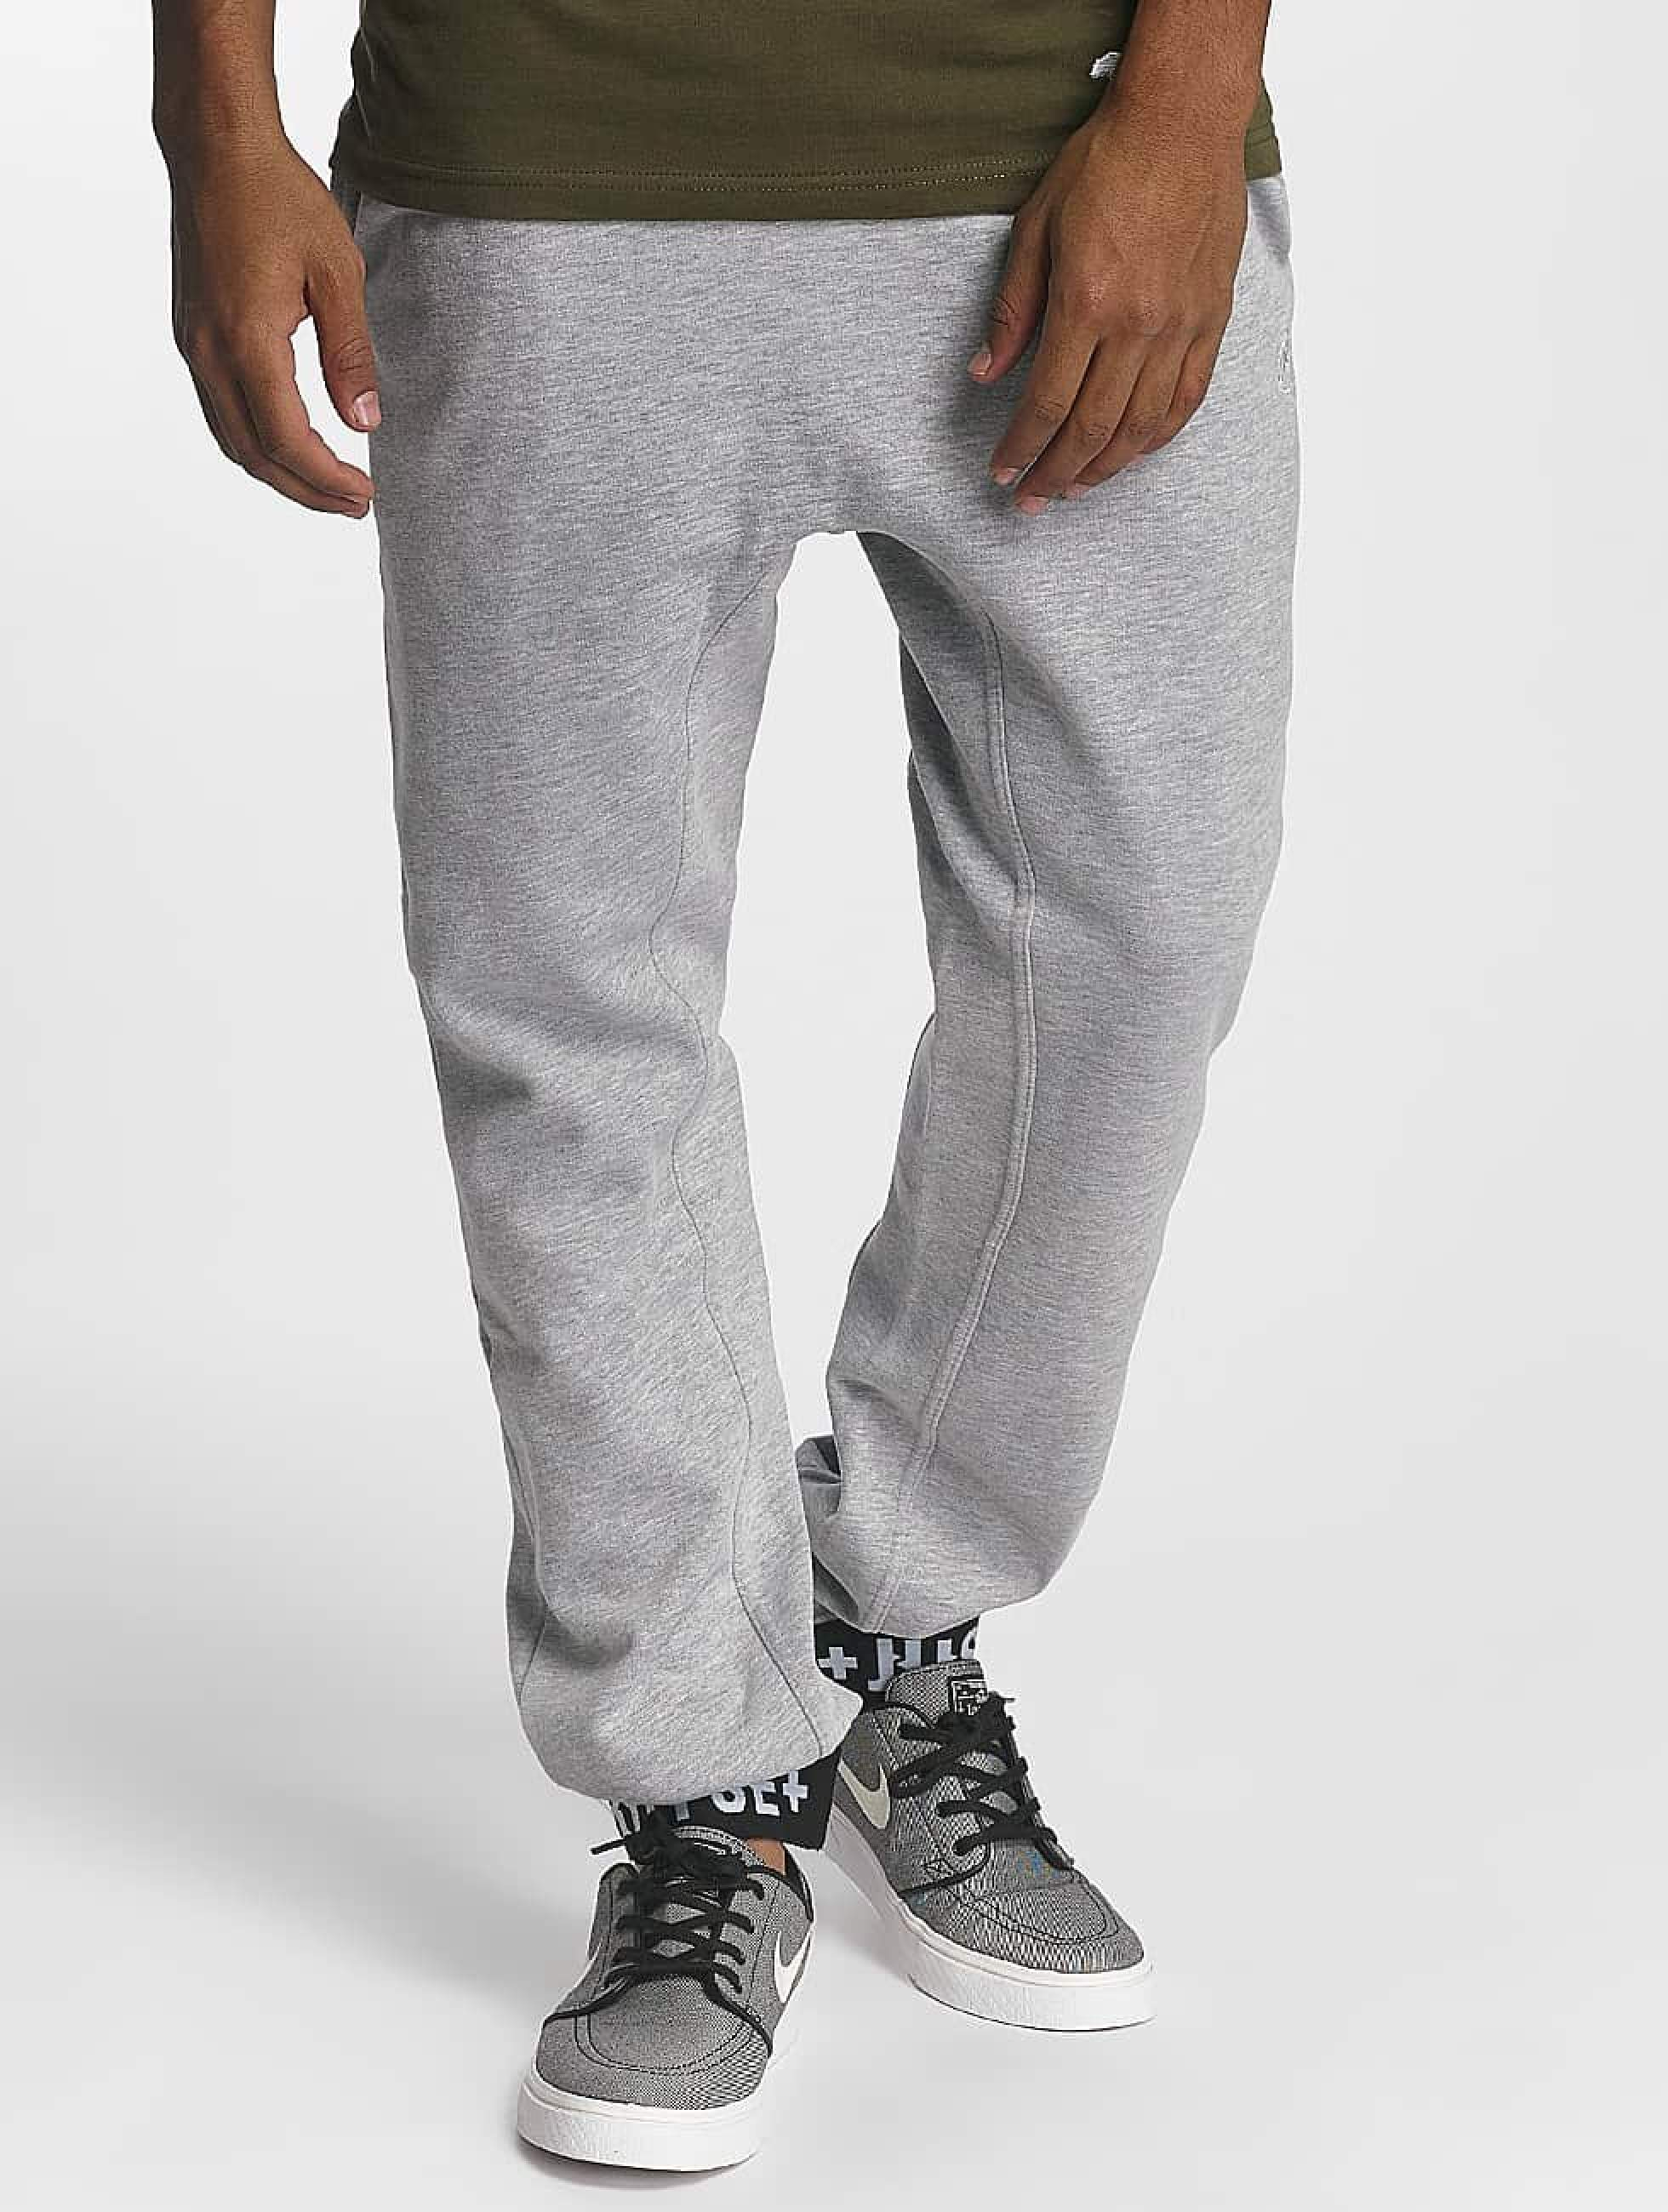 Just Rhyse / Sweat Pant Cottonwood in grey 3XL